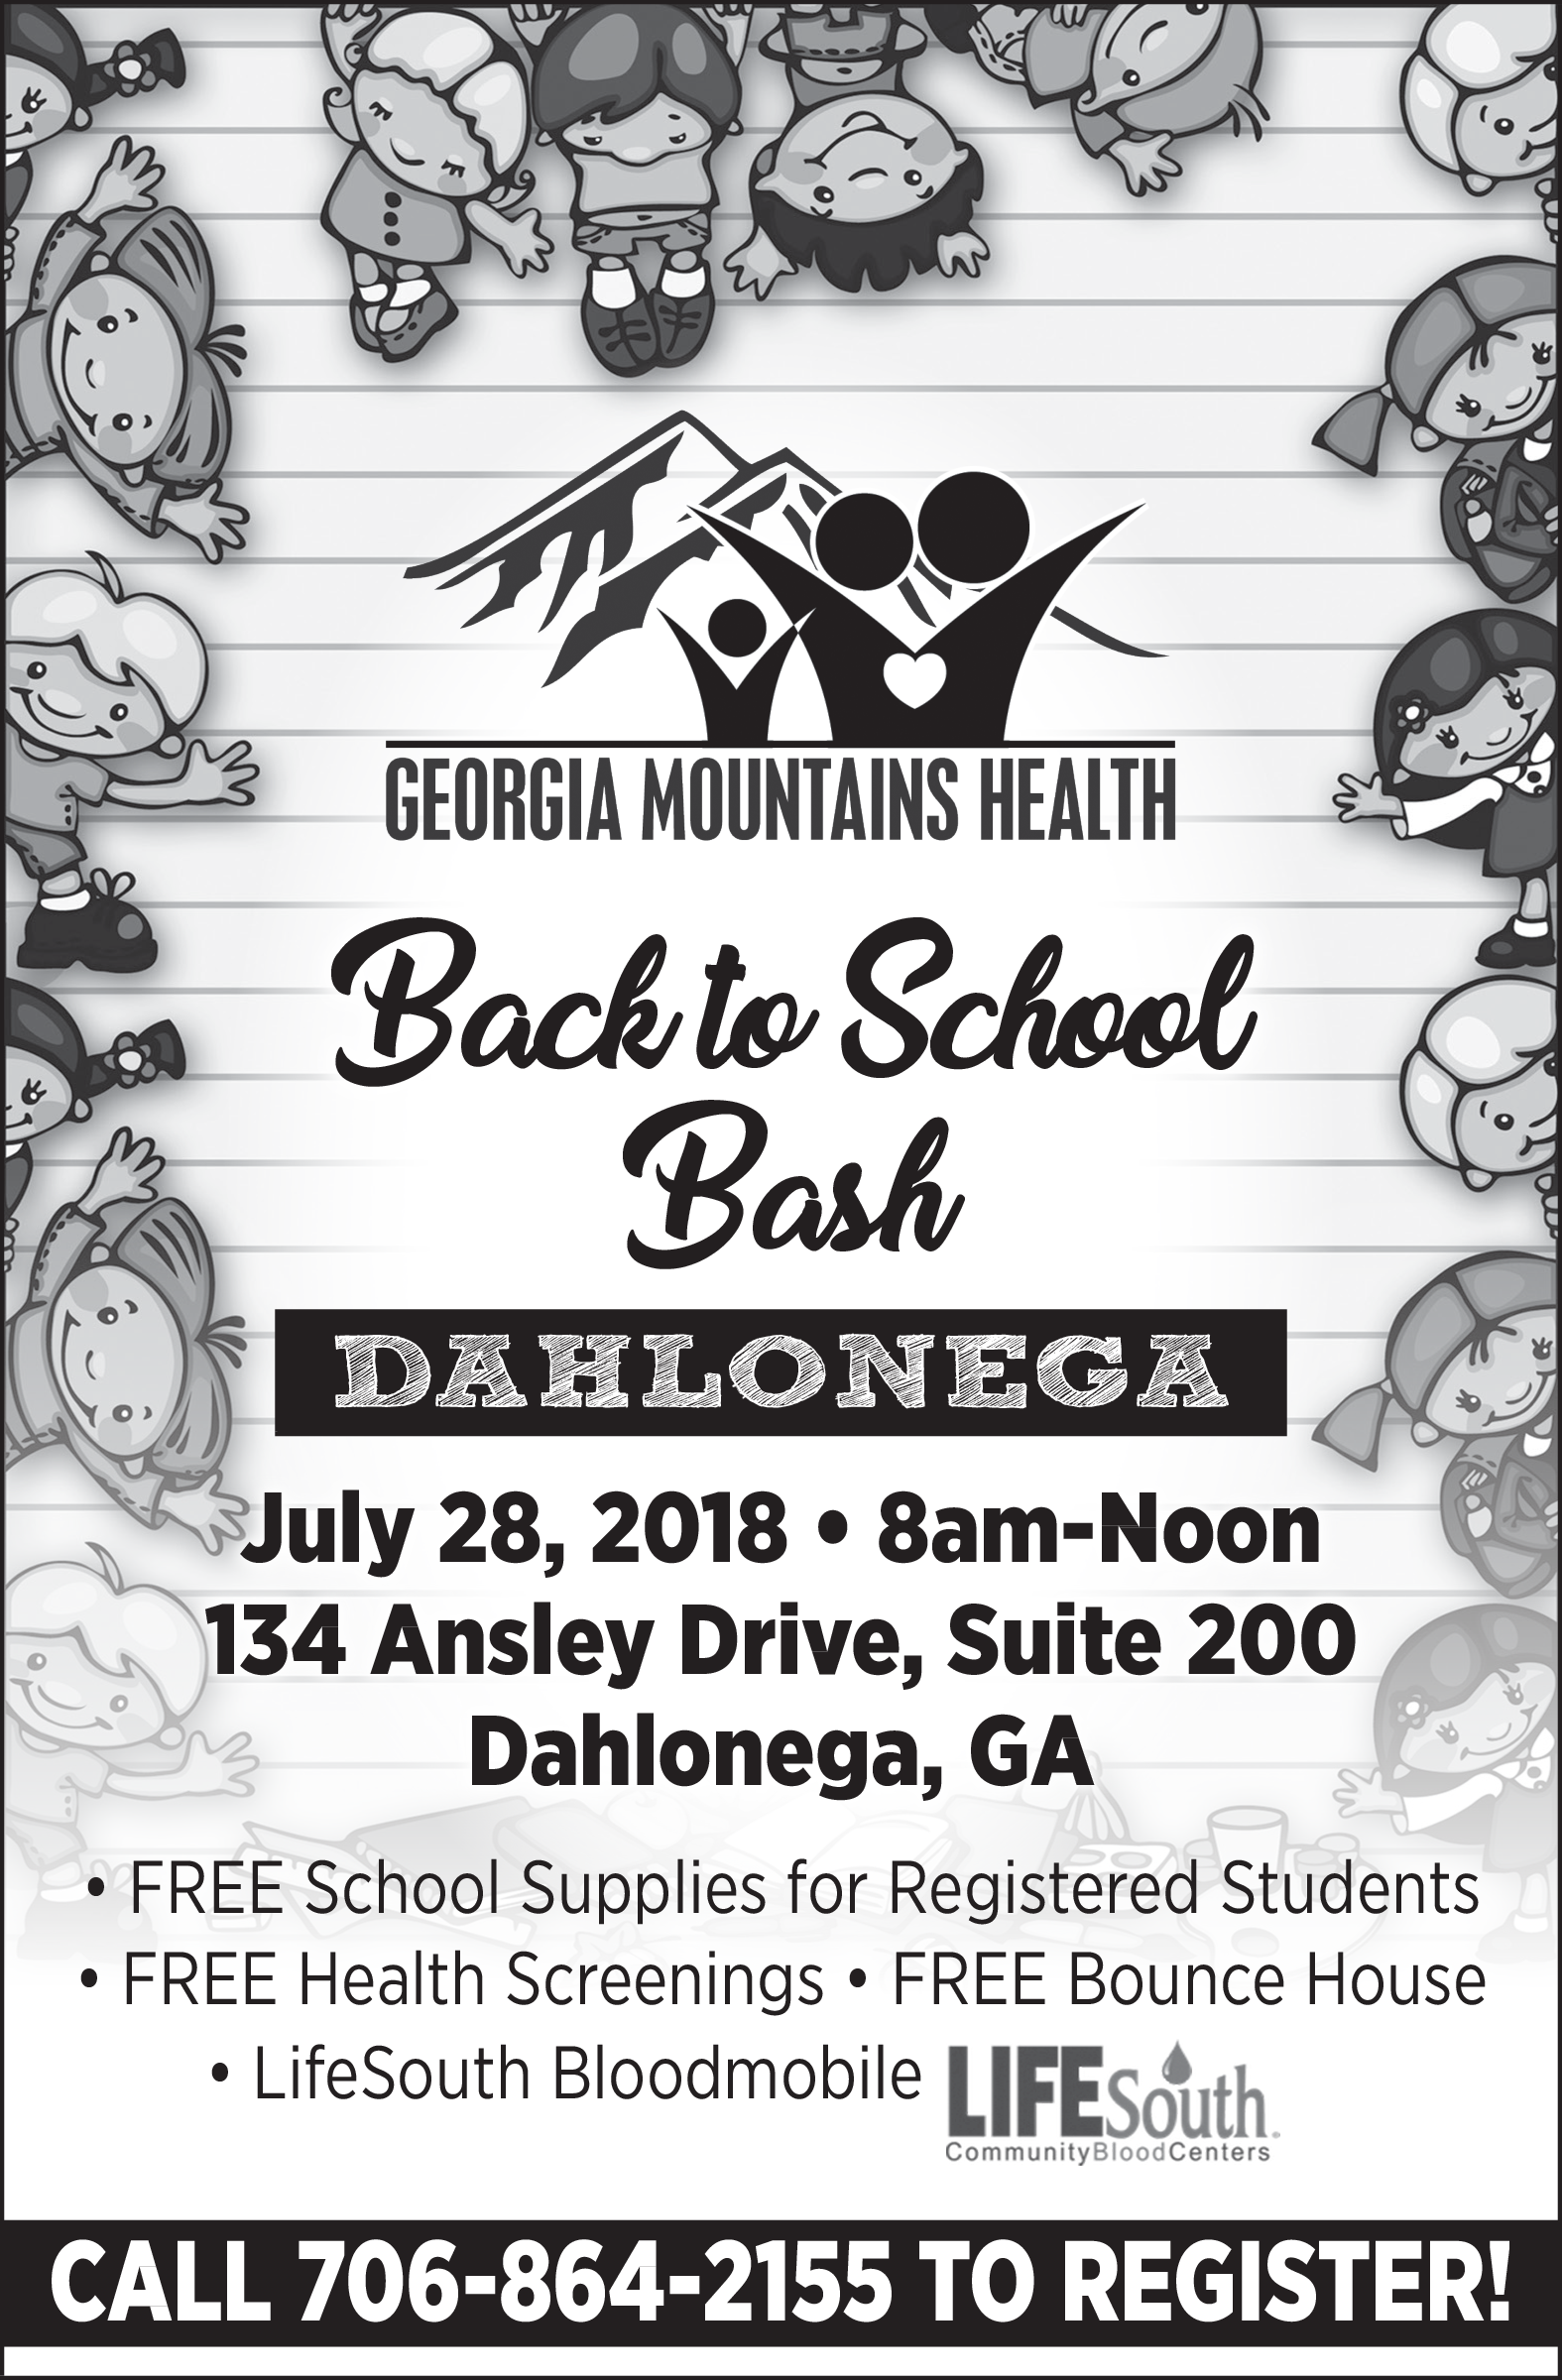 FREE School Supplies for Registered Students in Dahlonega